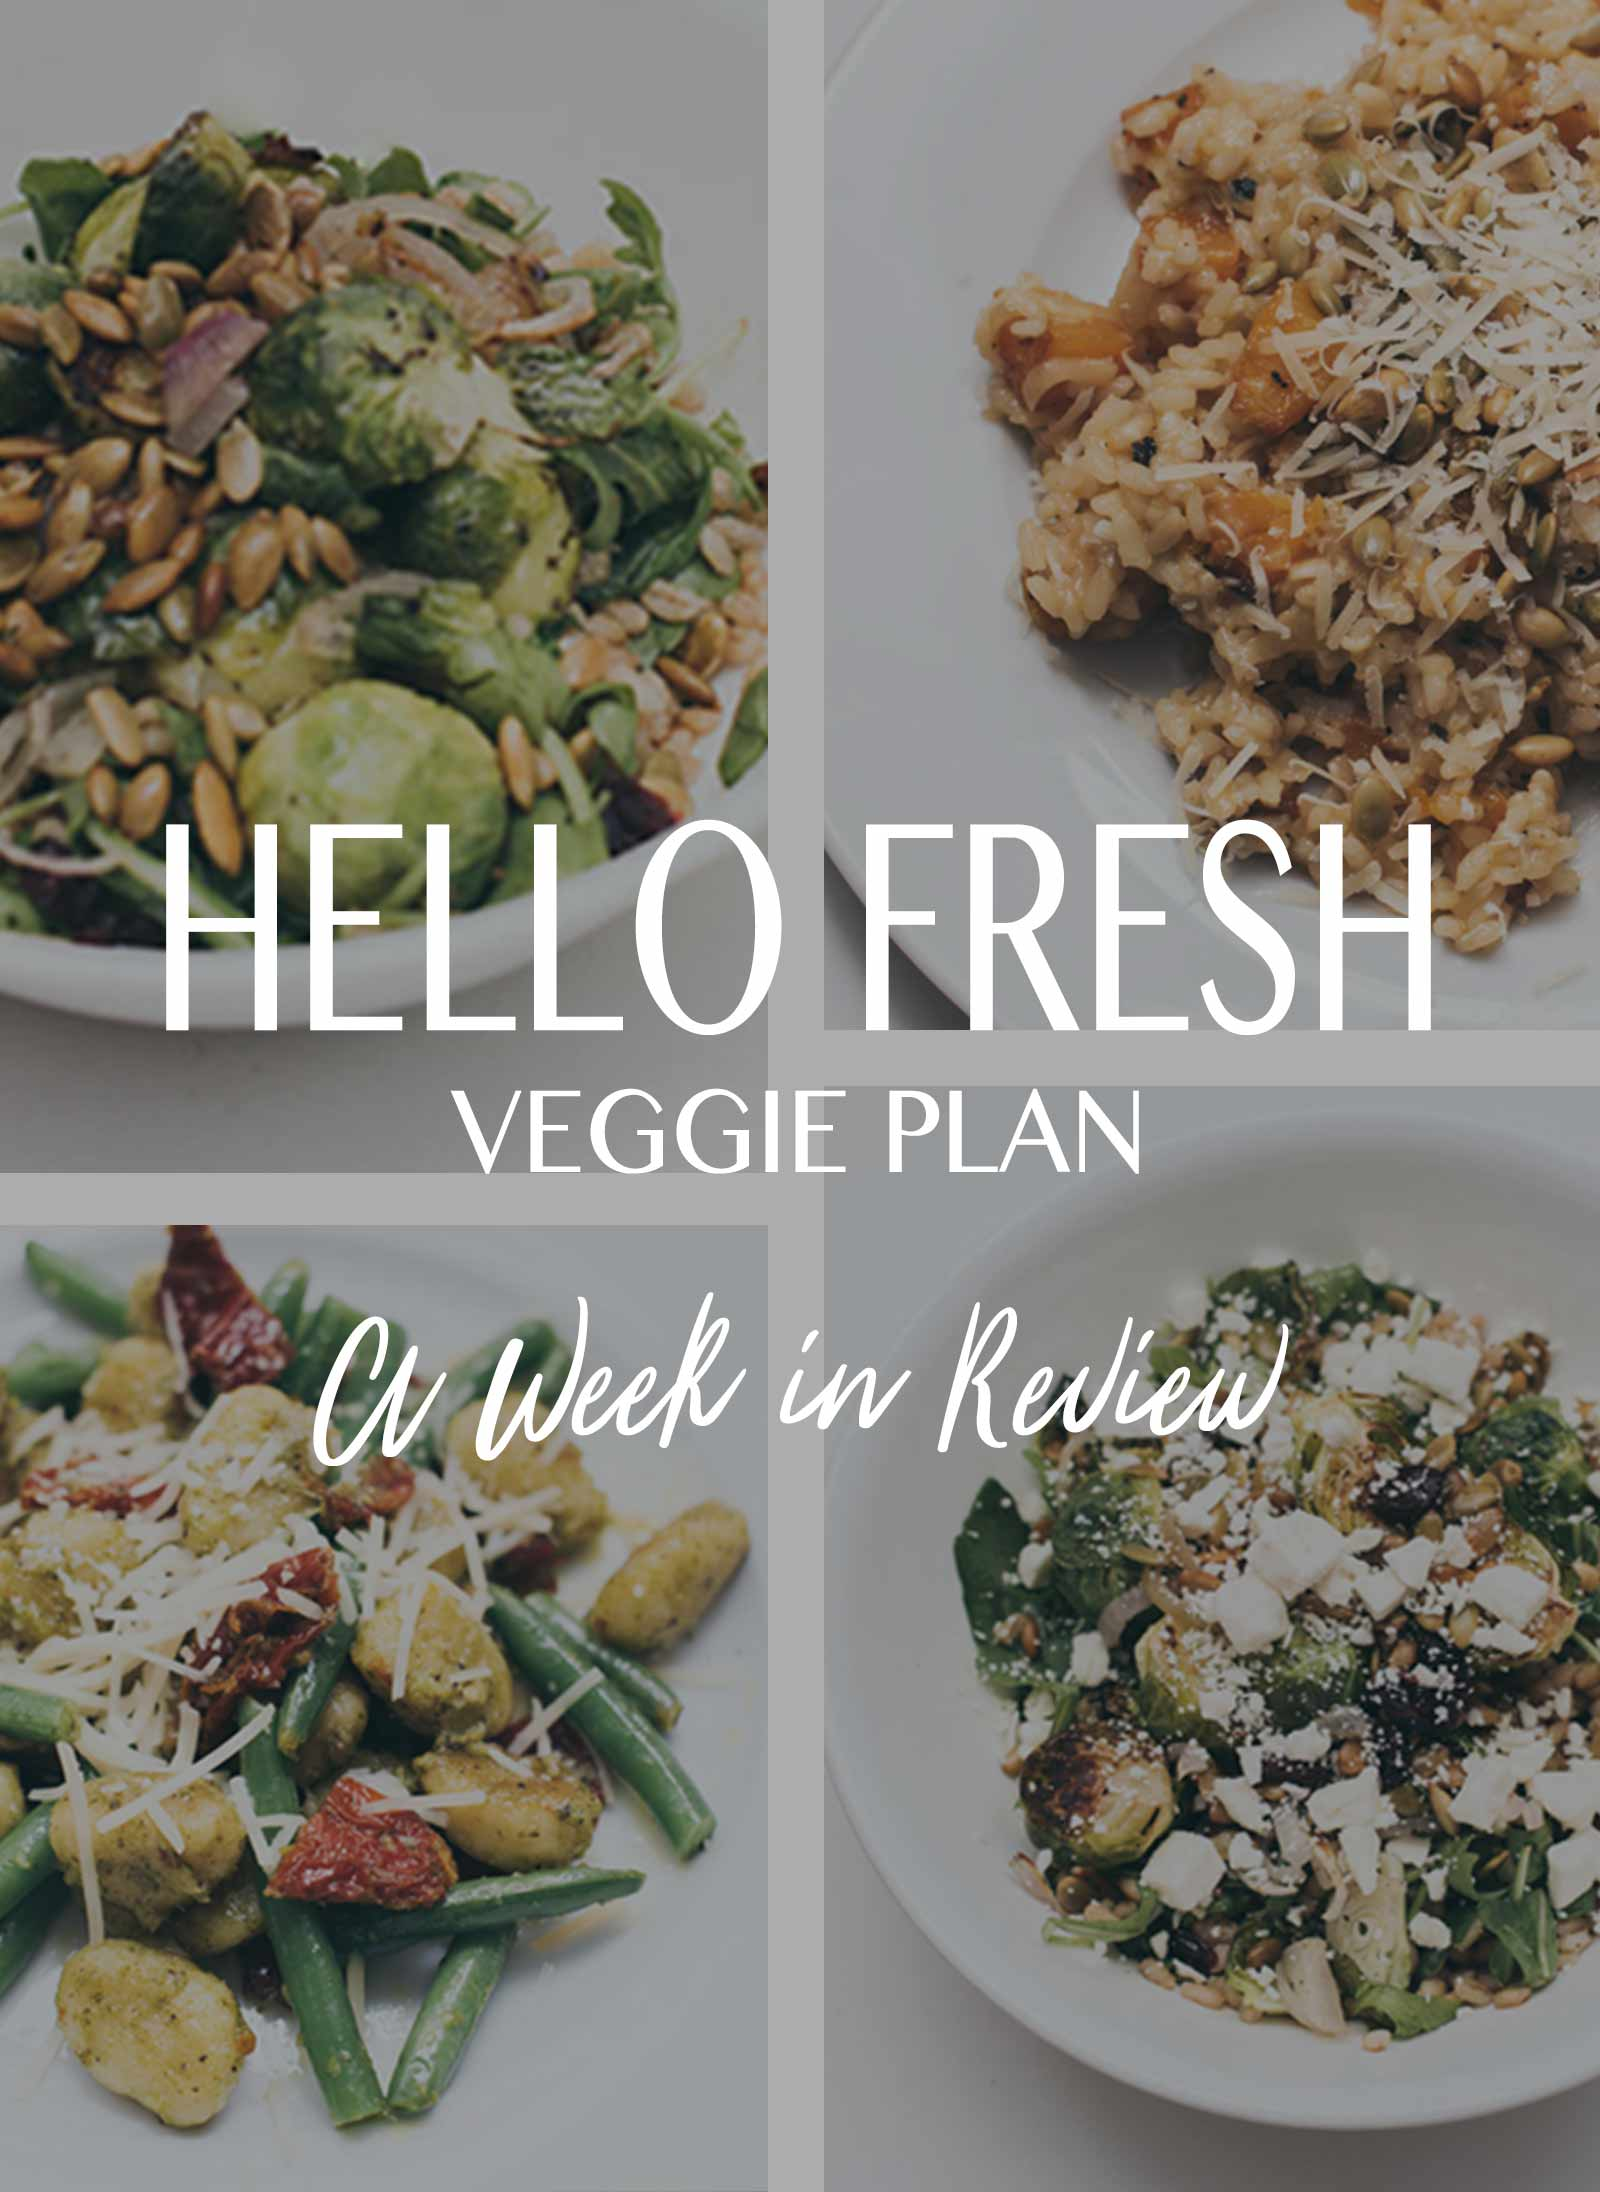 Meal Kit Delivery Service Hellofresh  Deals Under 500 April